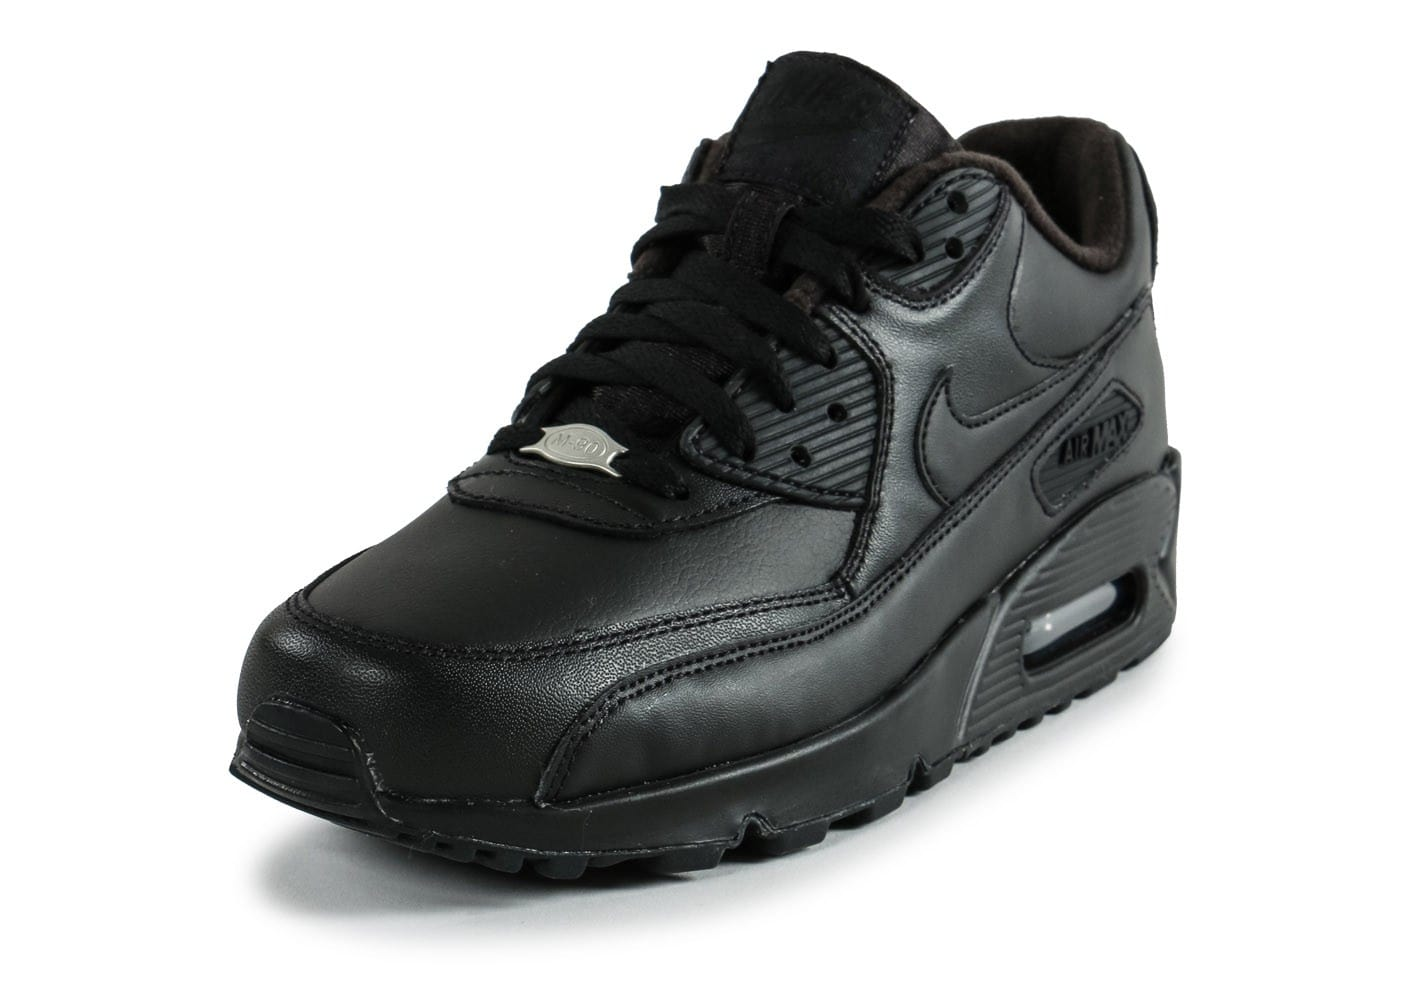 769d1b5f3a32 Nike Air Max 90 Leather noire - Chaussures Baskets homme - Chausport